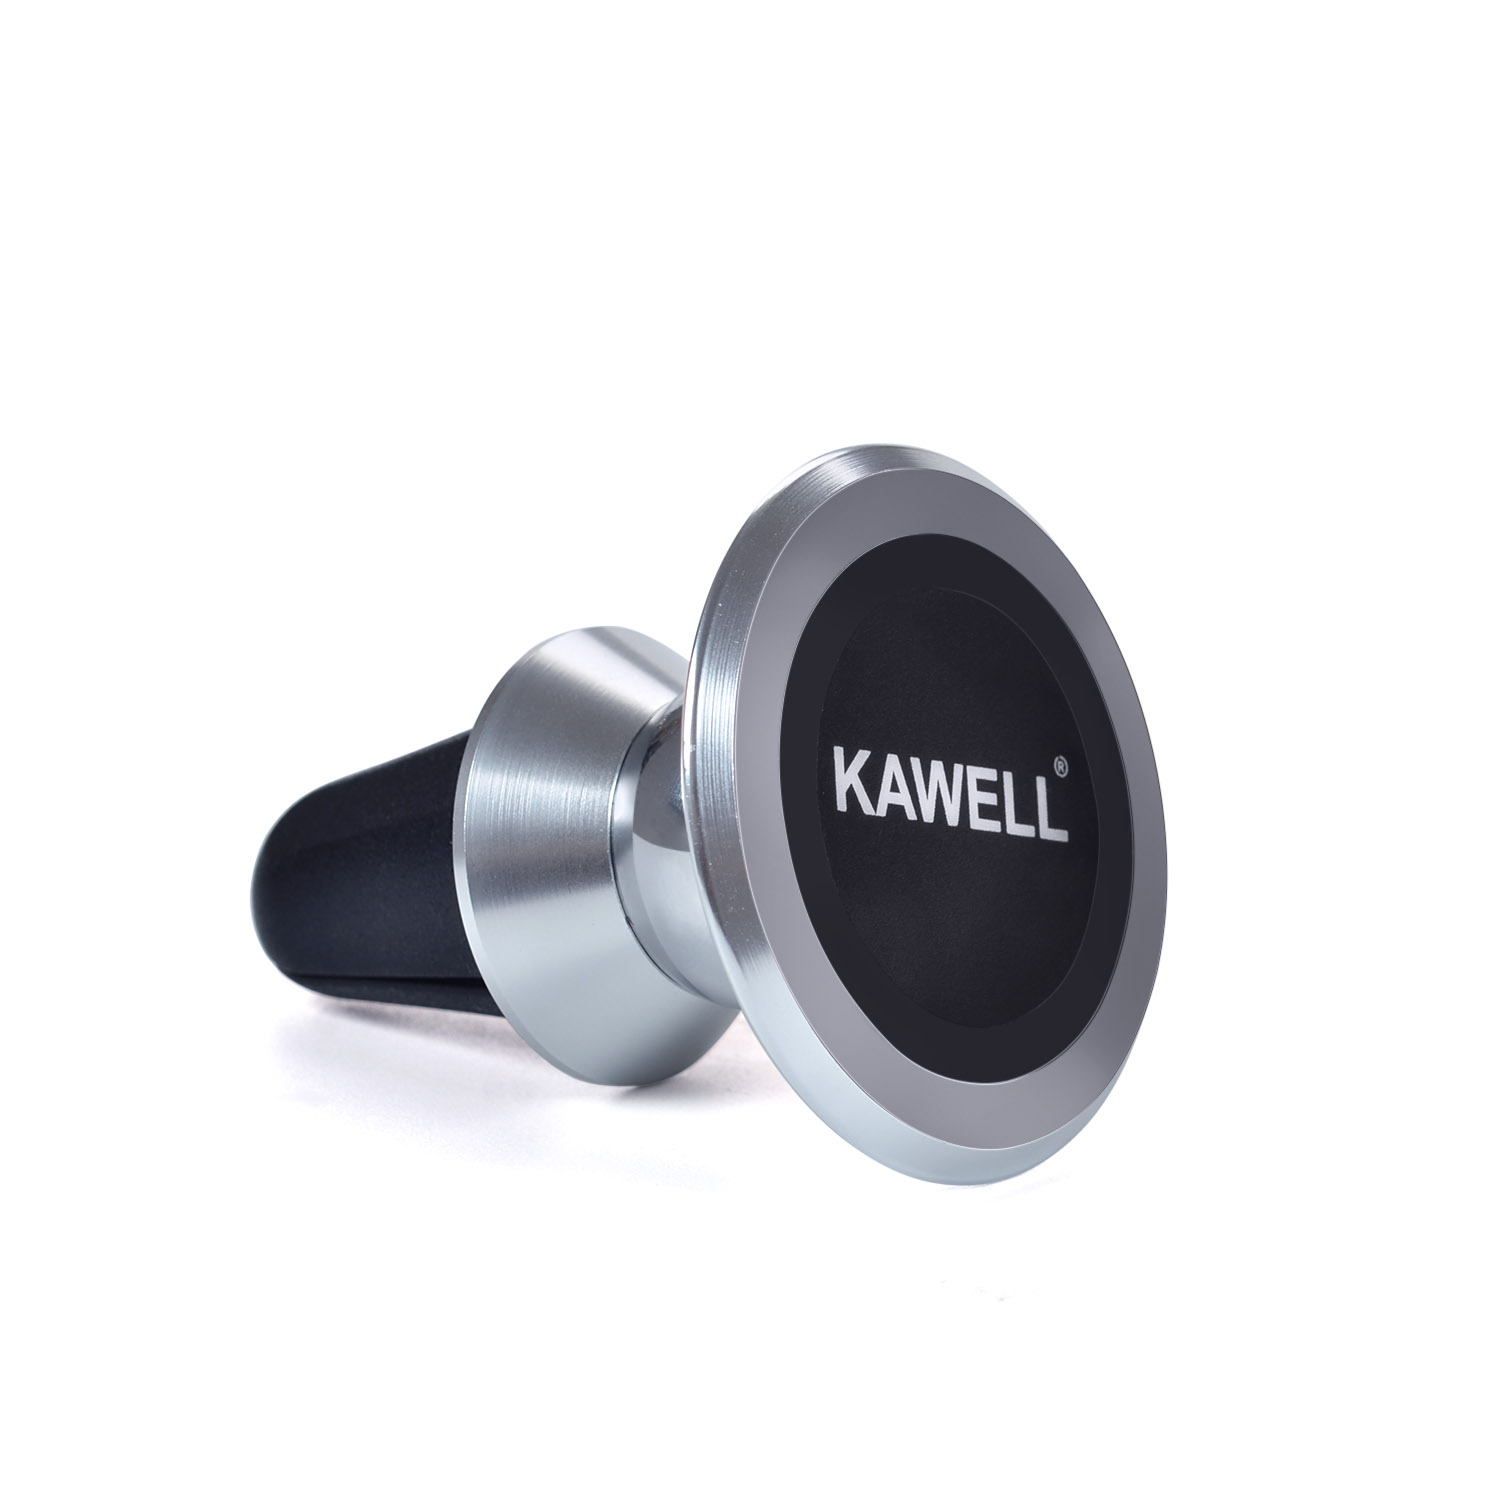 KAWELL Universal Magnetic Phone Car Mount, Aluminum Air Vent Cell Phone Holder, 360 Degree Adjustable for iPhone, Samsung, Nexus other Smart Phone and GPS Etc. (Aluminum Silver)